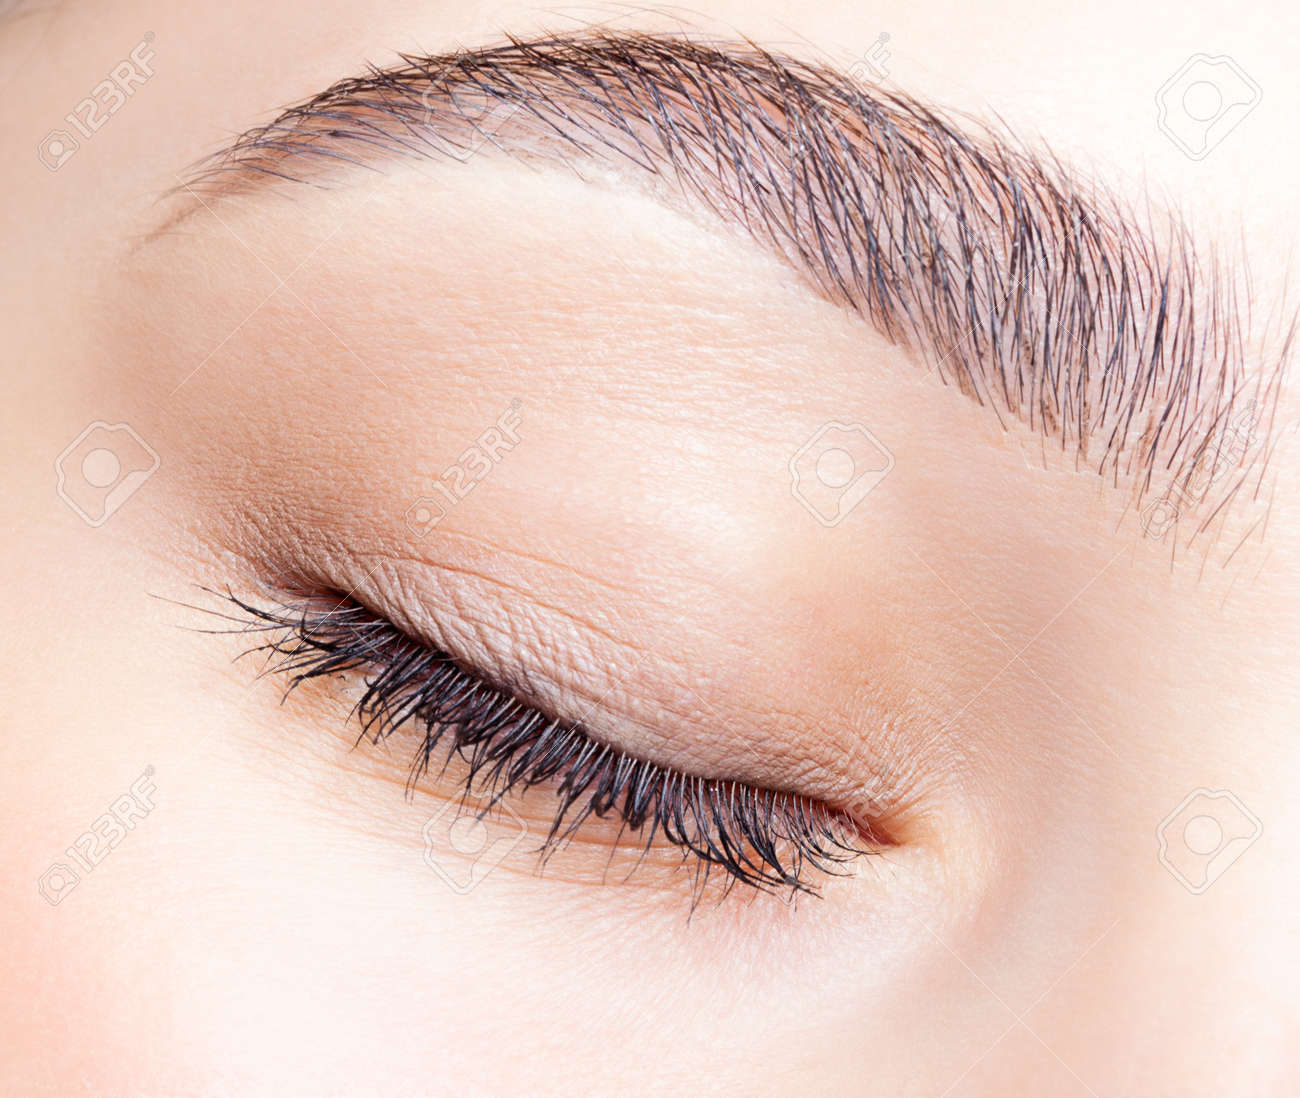 Closeup shot of female closed eye and brows with day makeup - 46391897